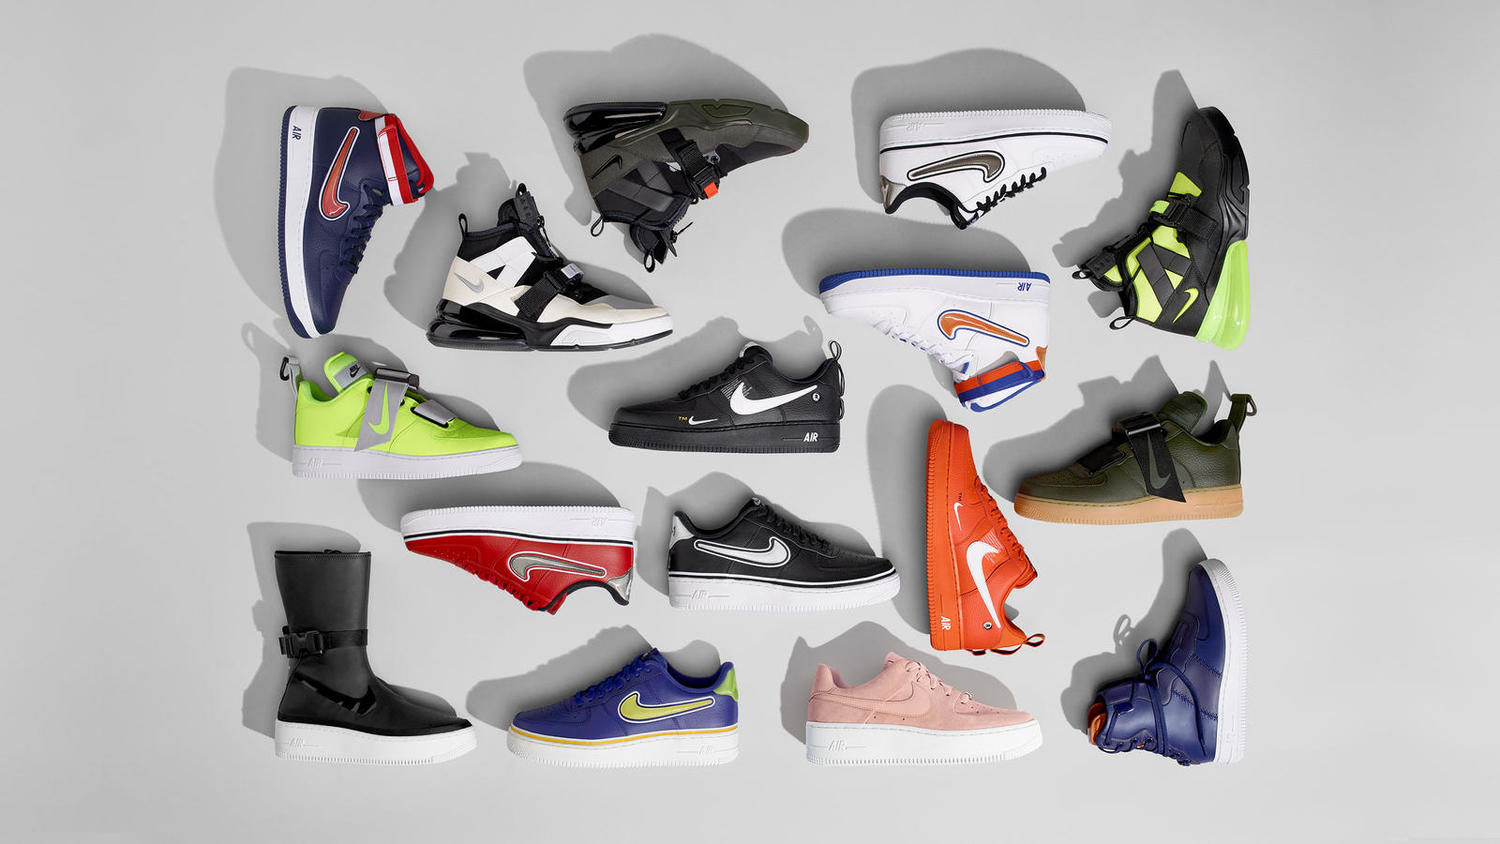 Clothing, Footwear, Shoe, Sneaker